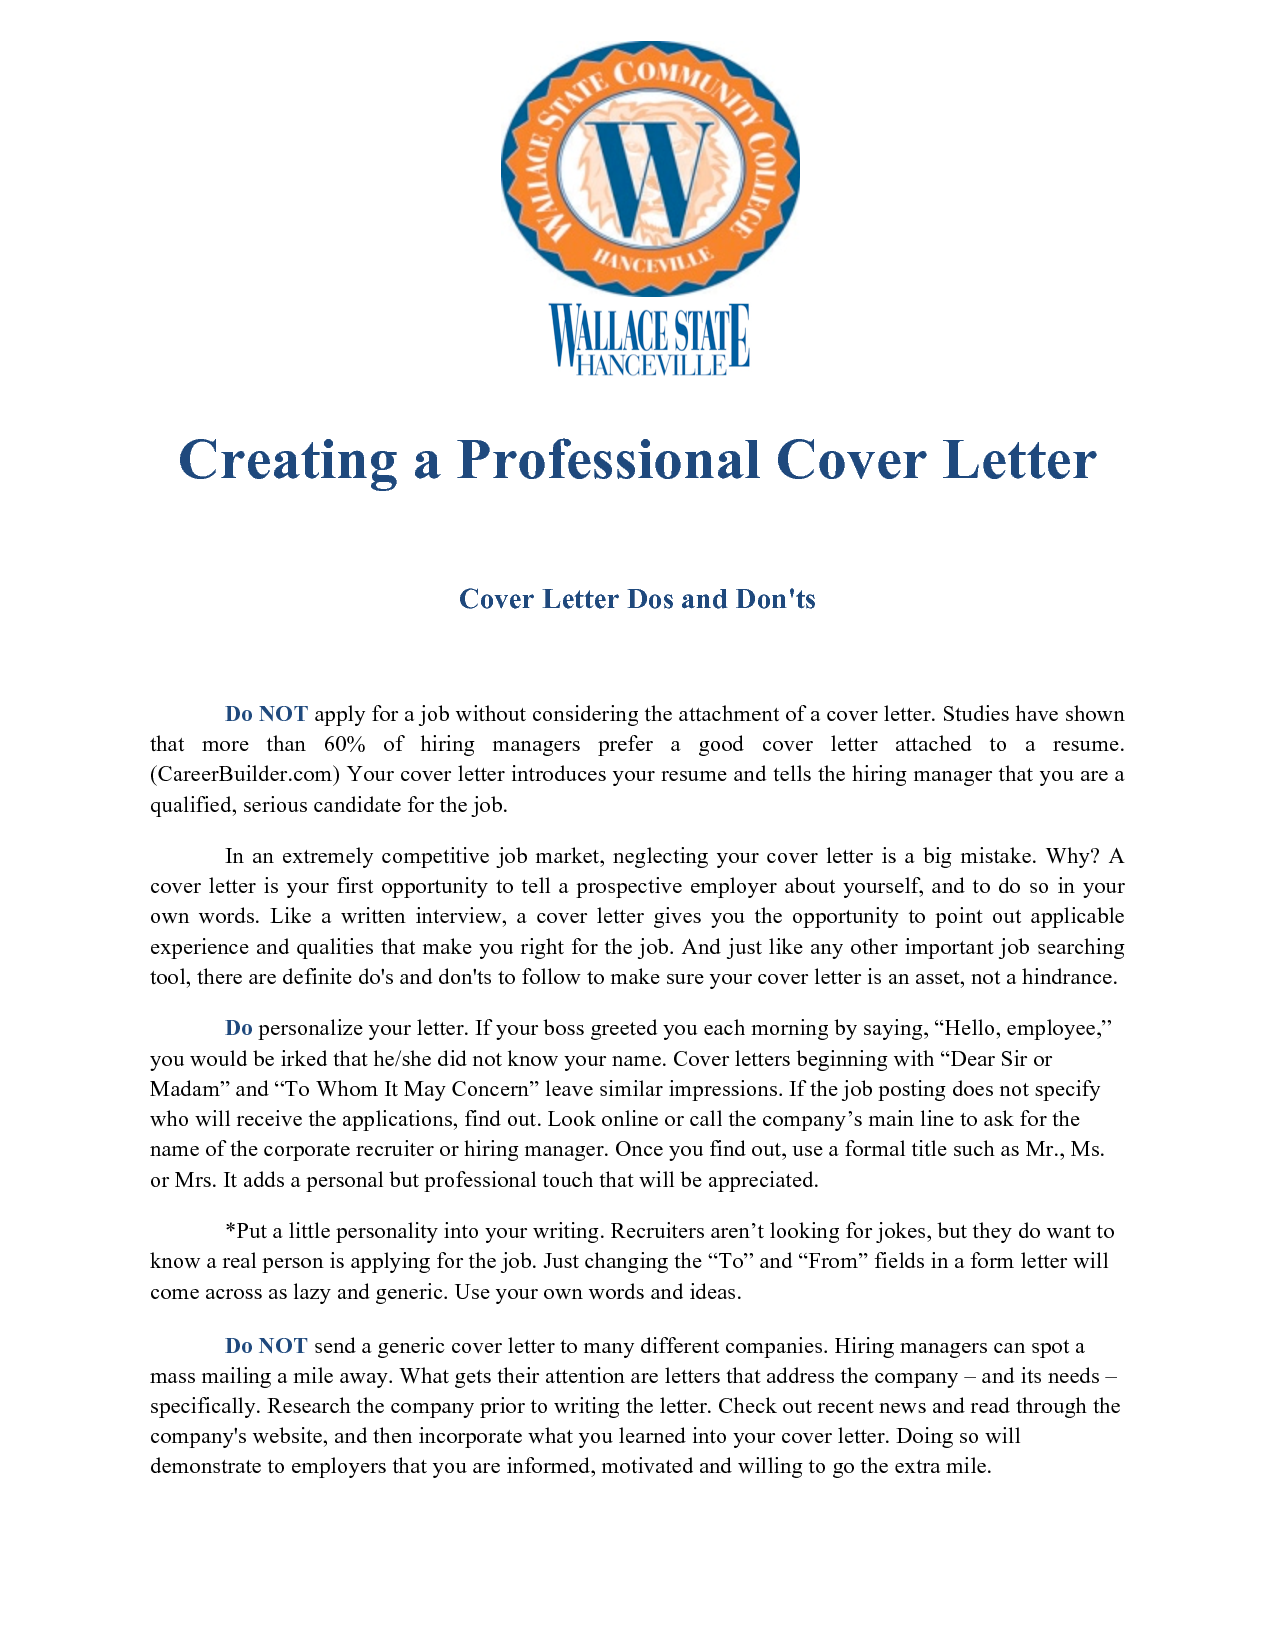 career builder cover letter sample